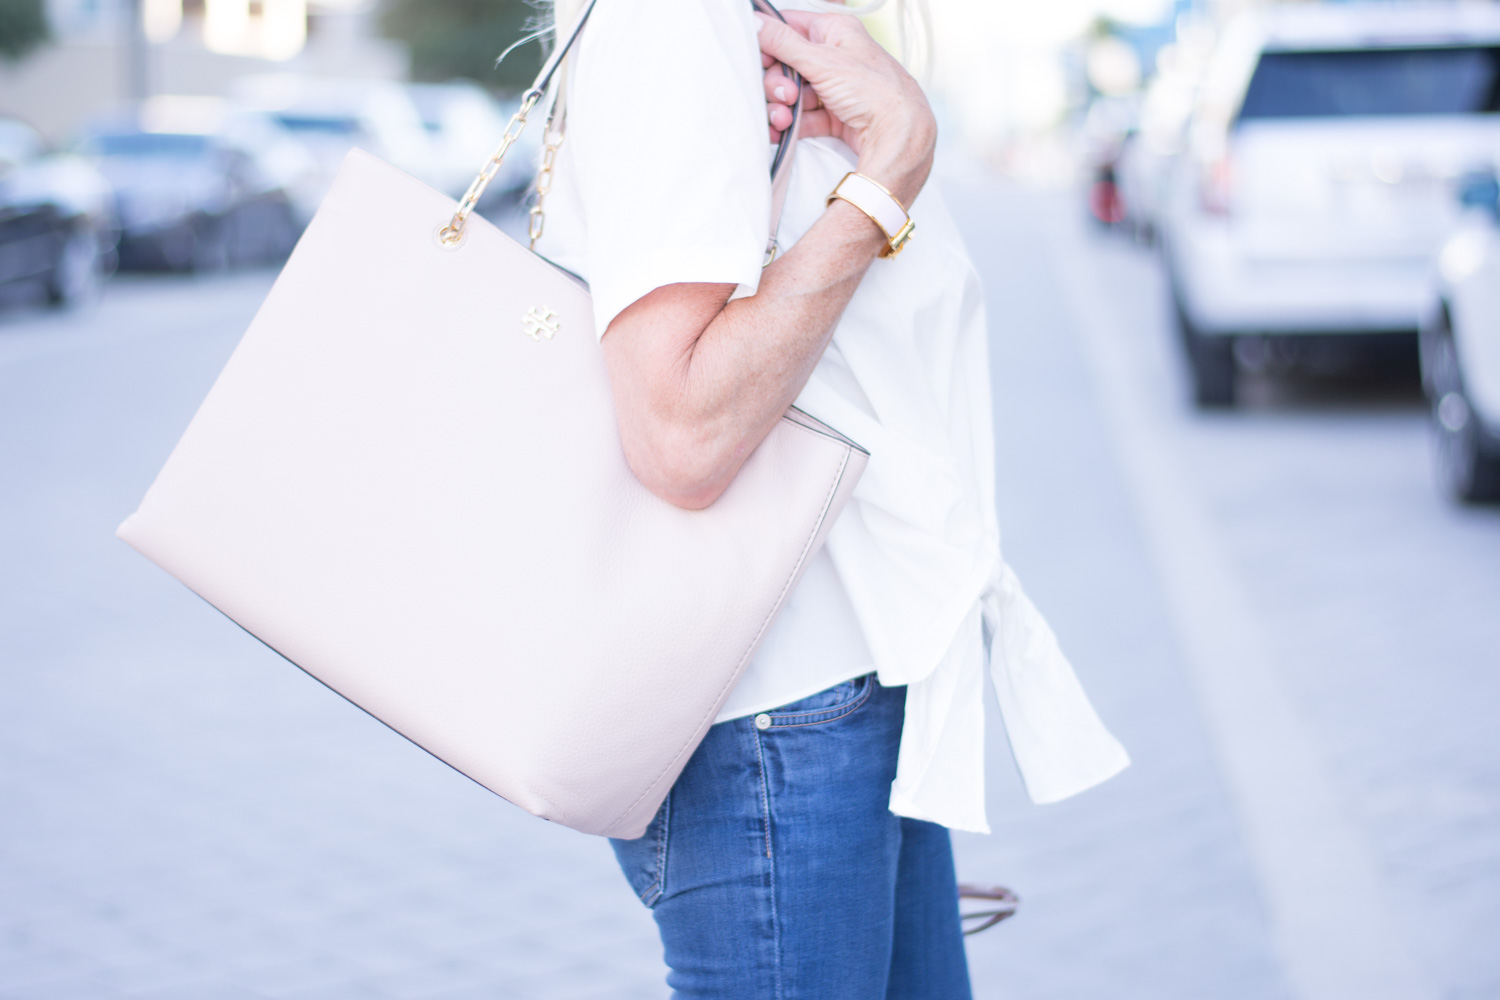 b18940f61f Nordstrom Anniversary Sale Early Access is in full swing! One of our tips  for shopping Early Access is that splurge items should probably be at the  top of ...